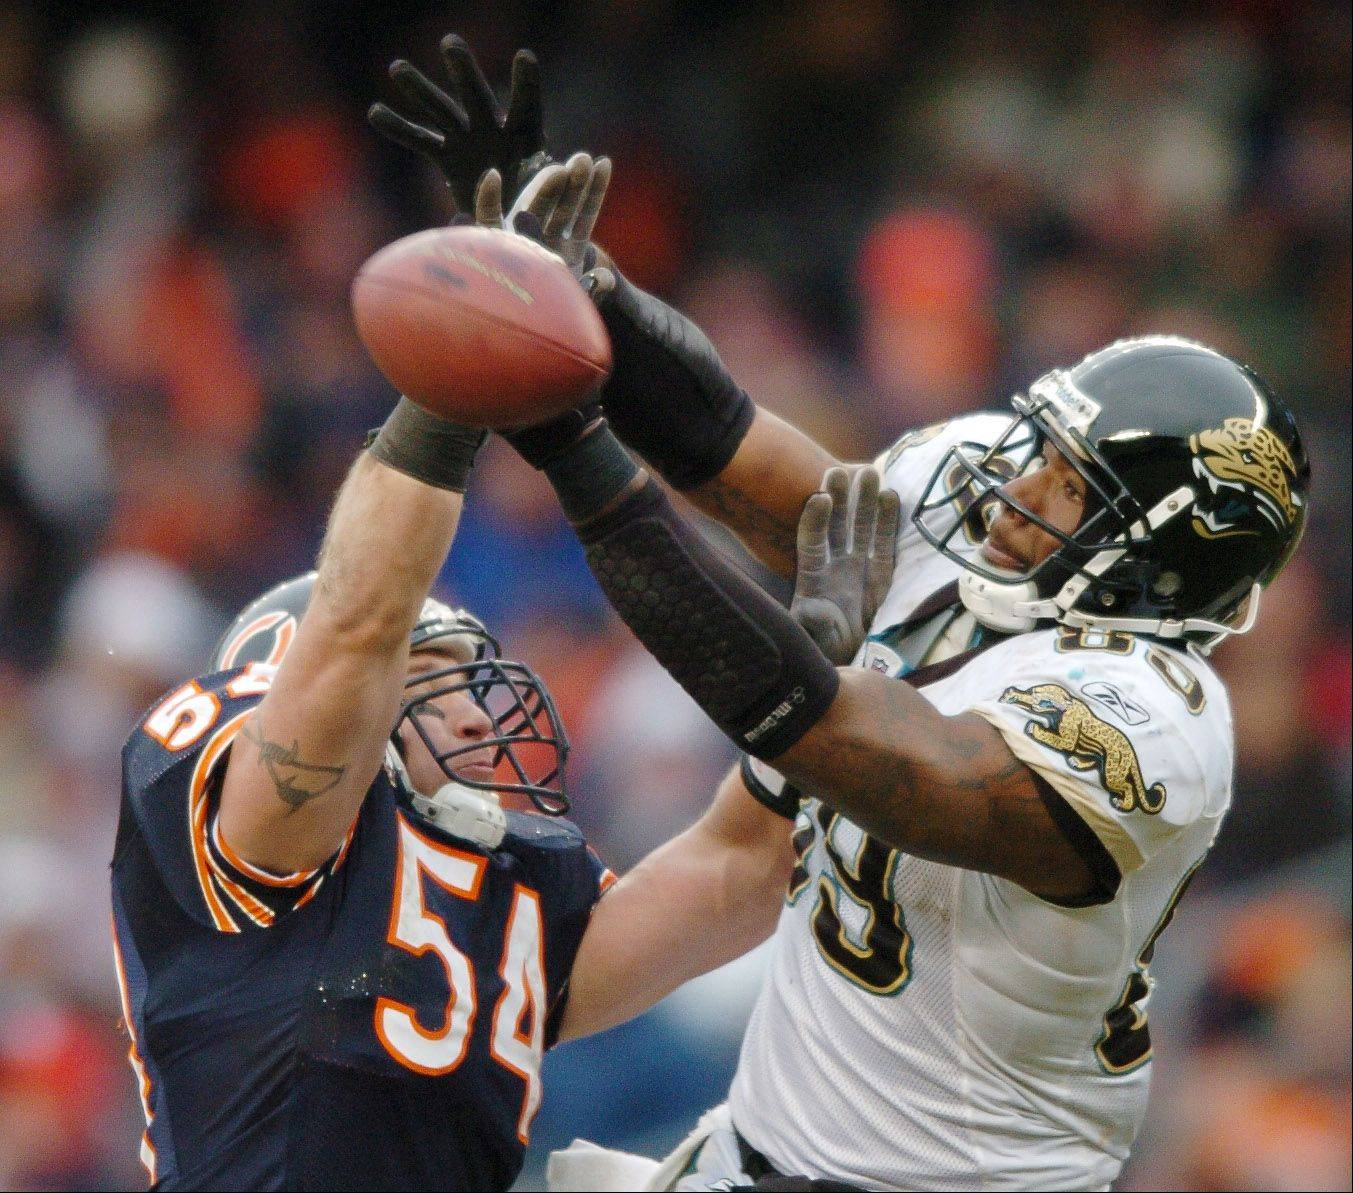 Brian Urlacher of the Bears breaks up a long pass to Marcedes Lewis of the Jaguars.